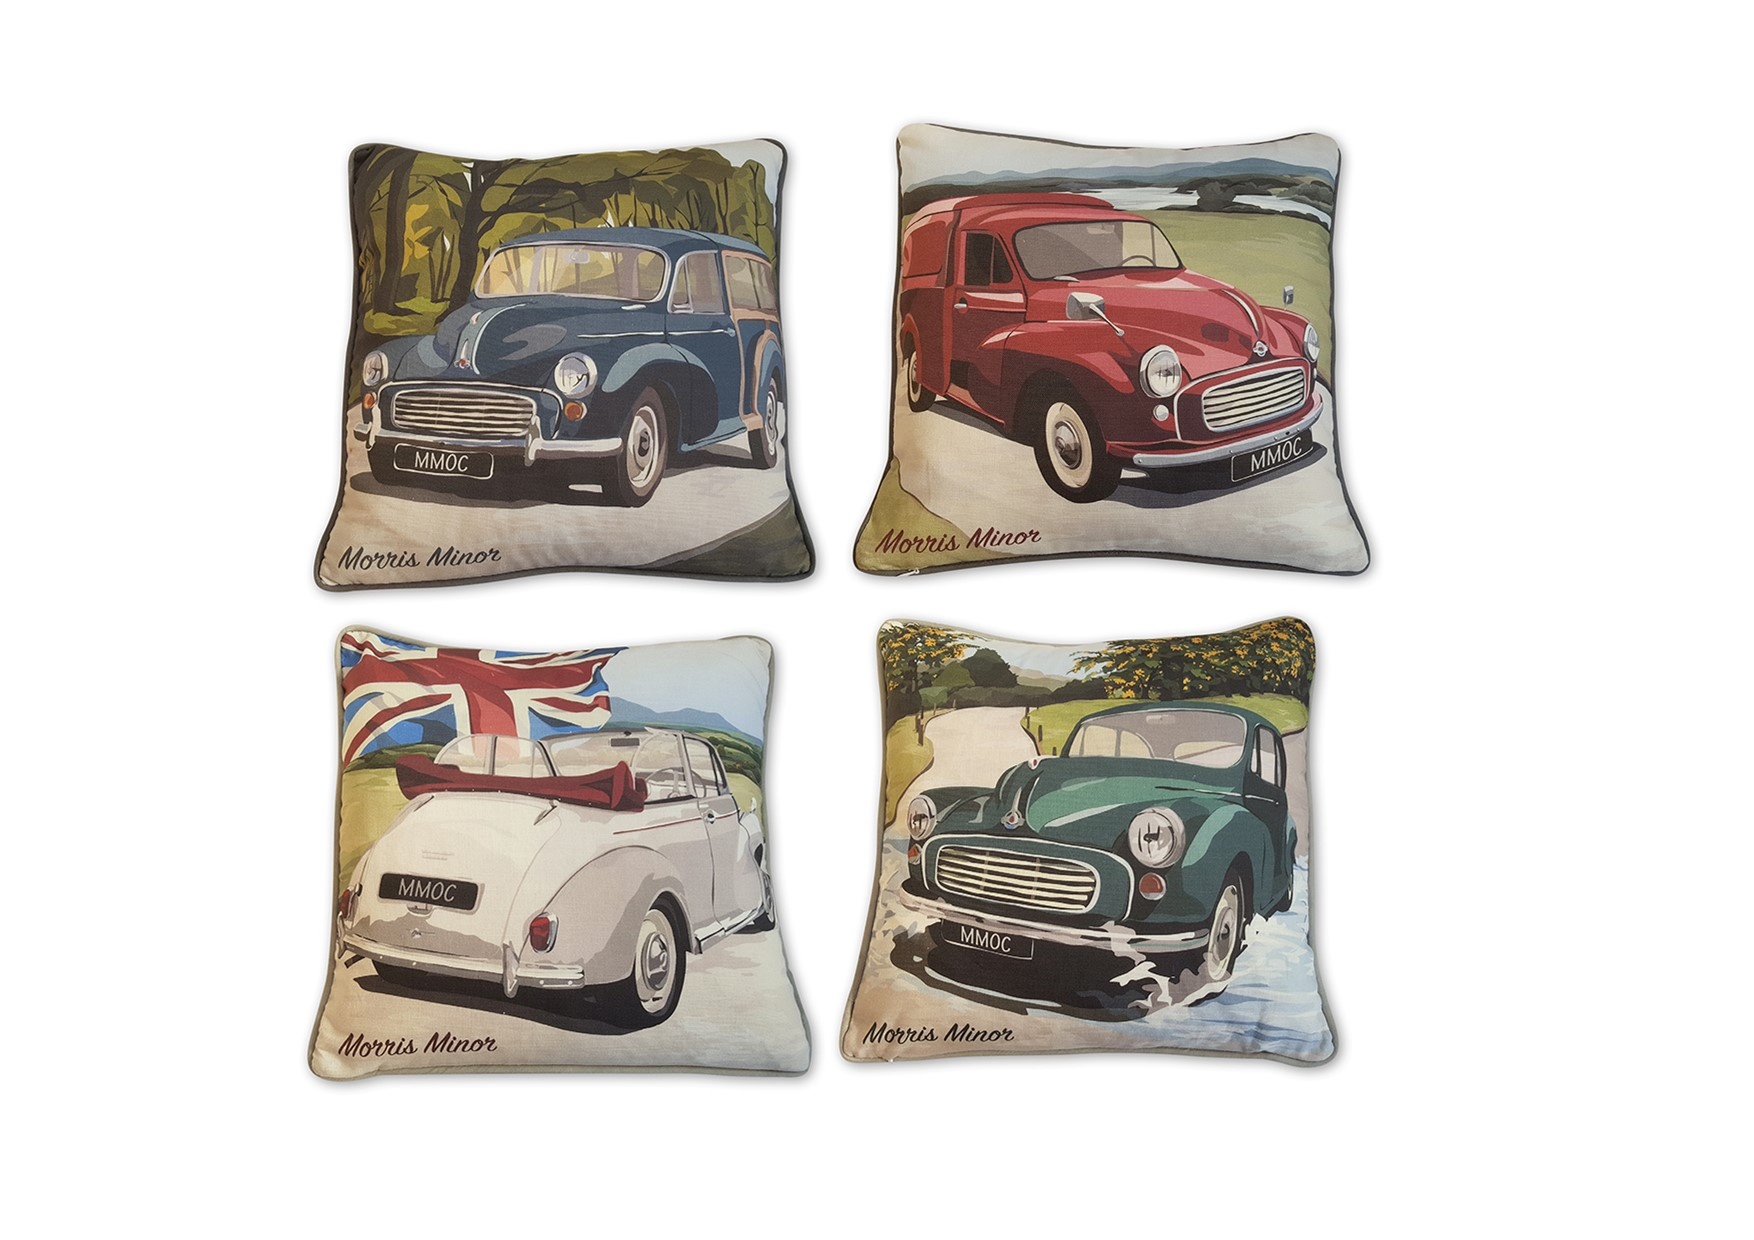 Cushion Covers - Two (both designs)